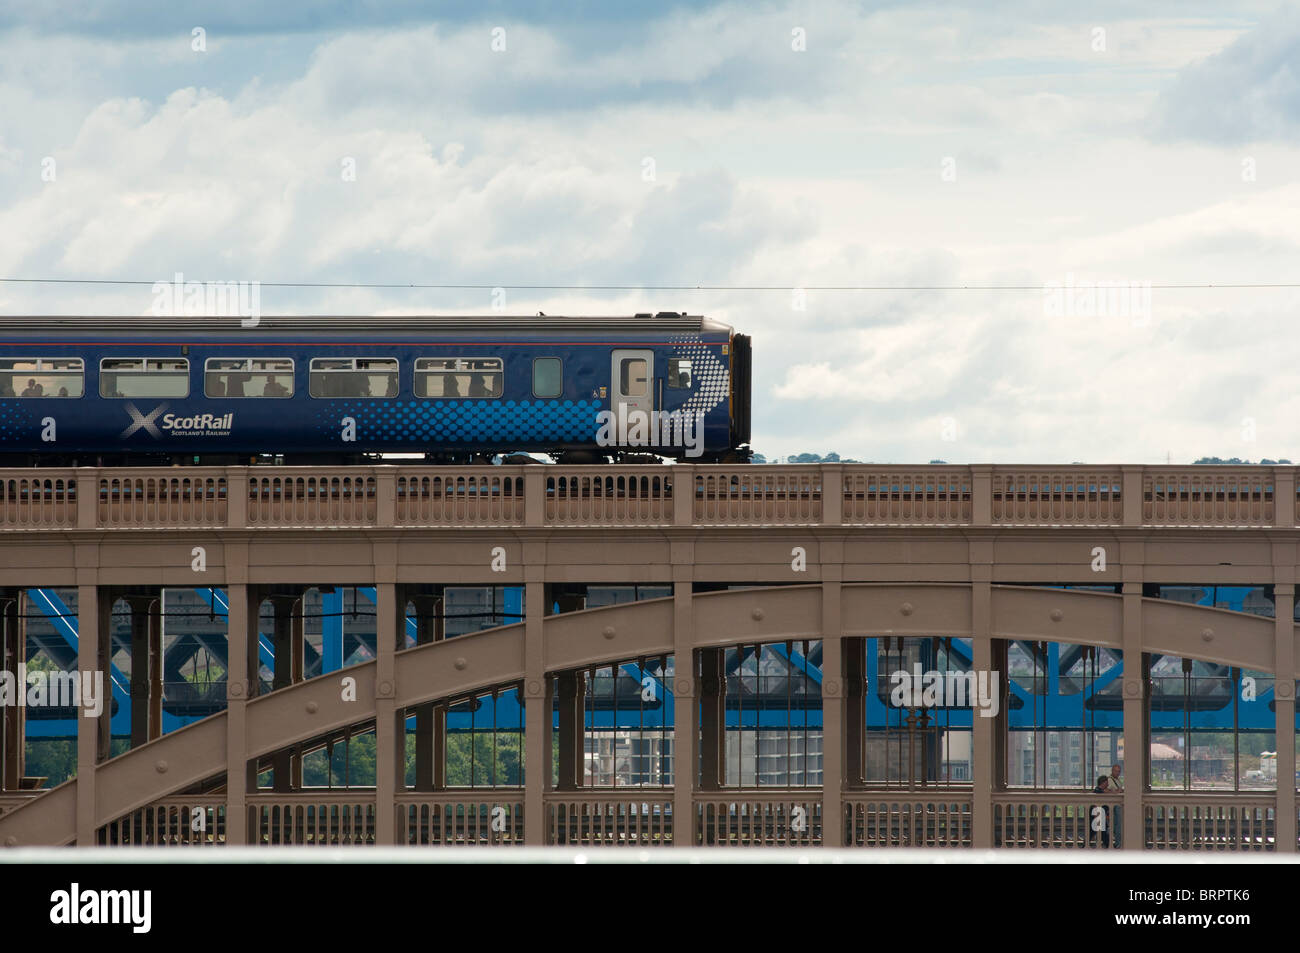 Scotrail train crossing the railway bridge on the Tyne river, Newcastle, UK - Stock Image